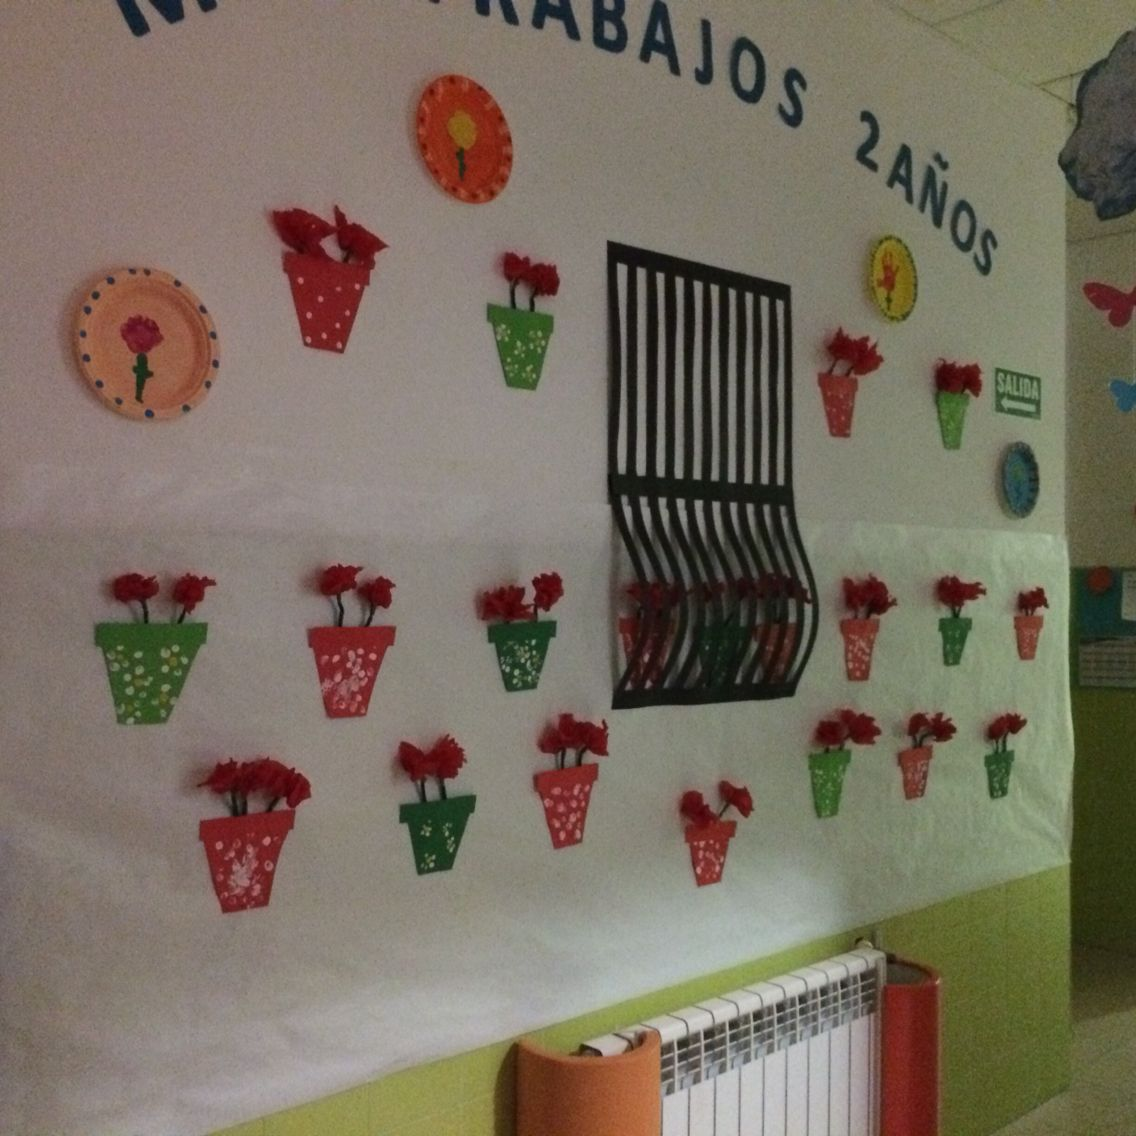 Patio andaluz escuela infantil vallmont decoracion for Decoracion primavera manualidades